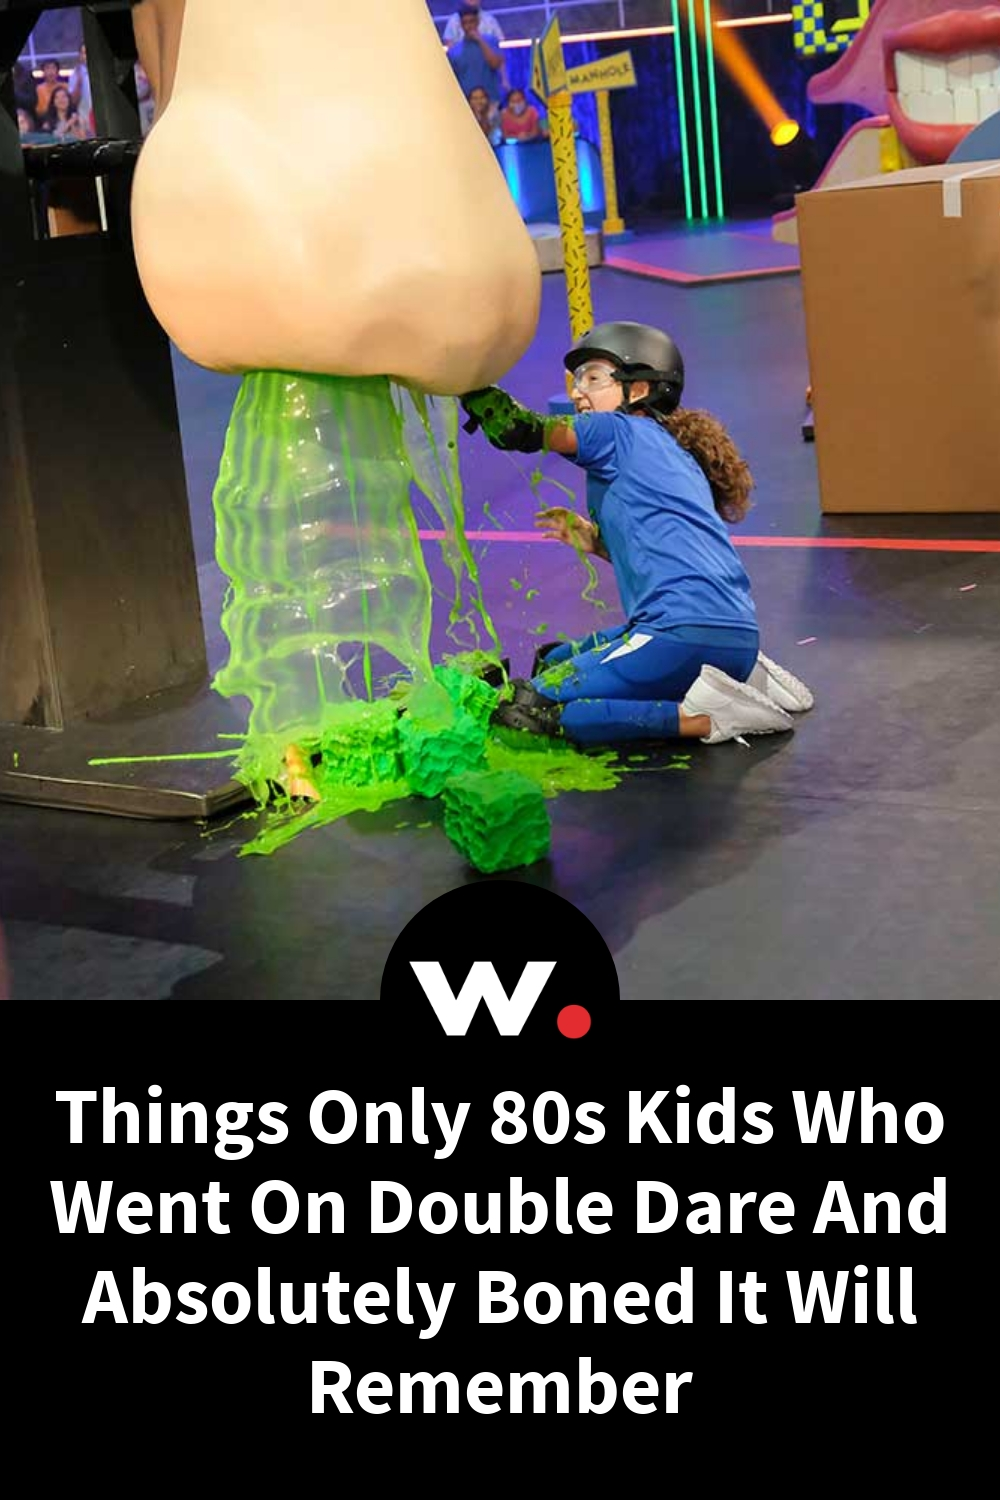 Things Only 80s Kids Who Went On Double Dare And Absolutely Boned It Will Remember